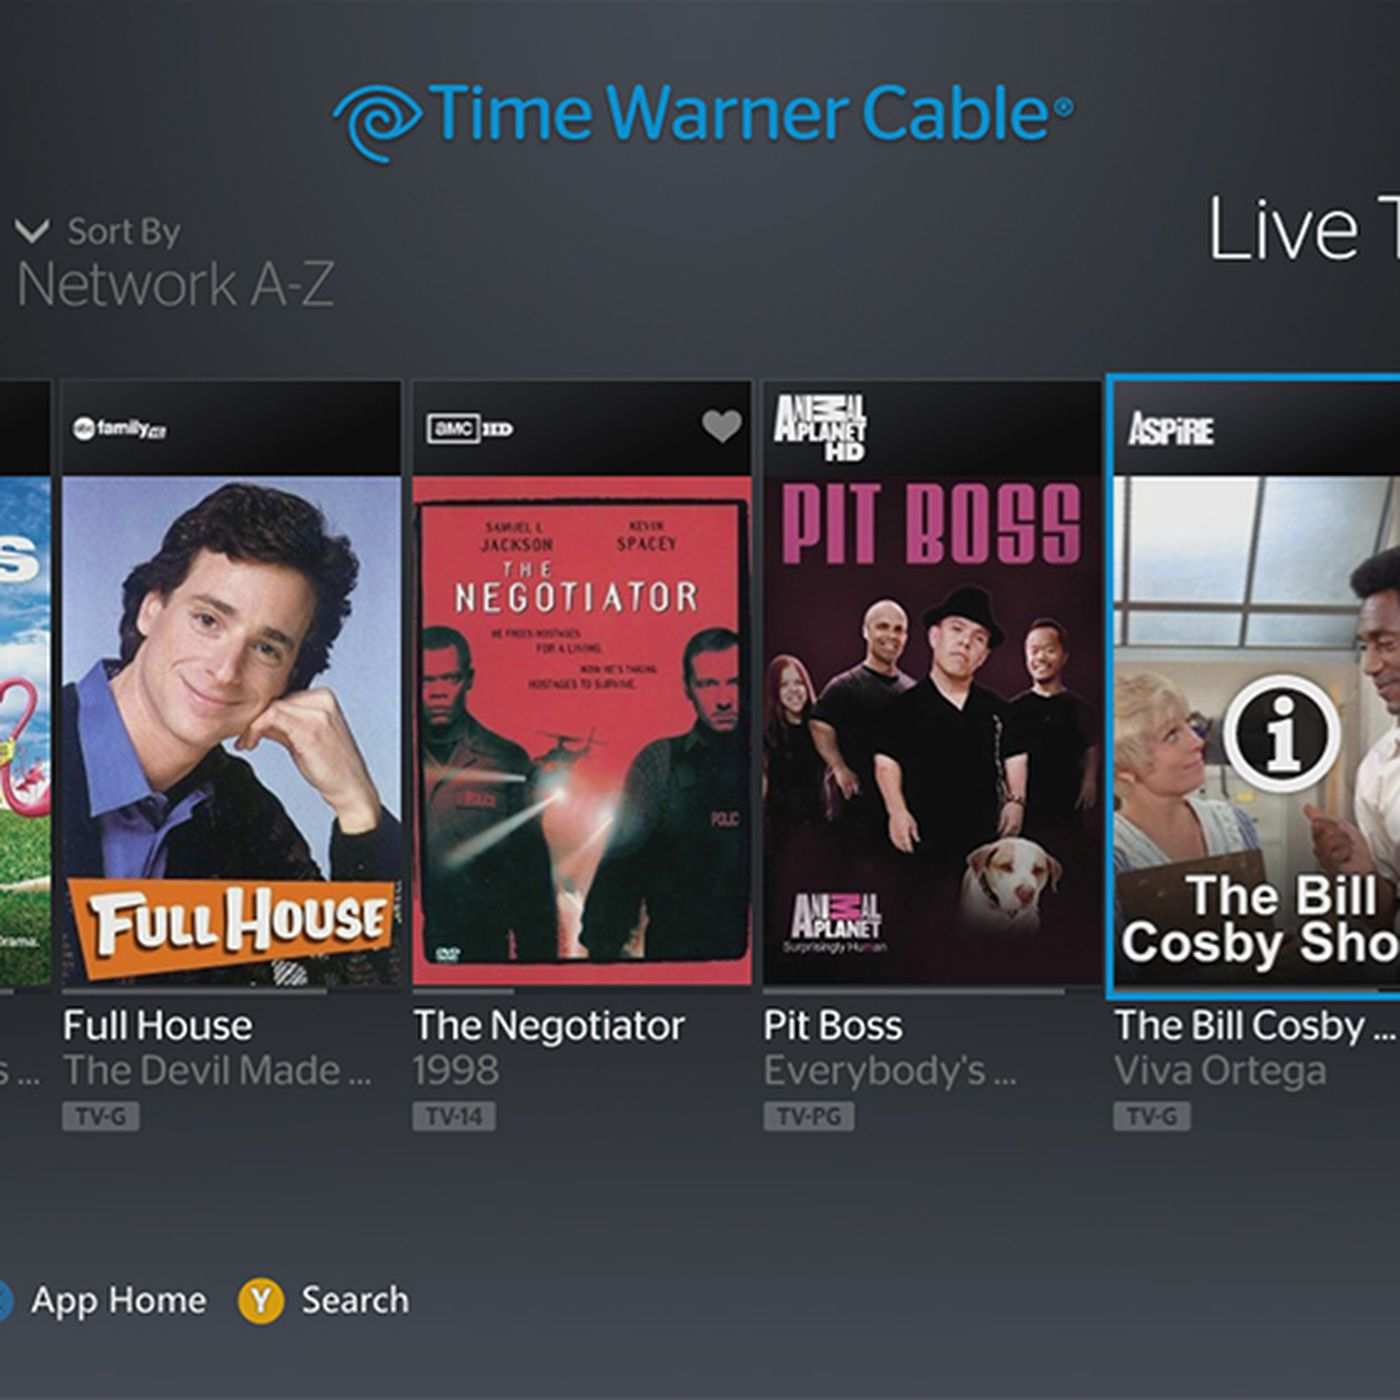 Time Warner Cable app launching today on Xbox 360 (update